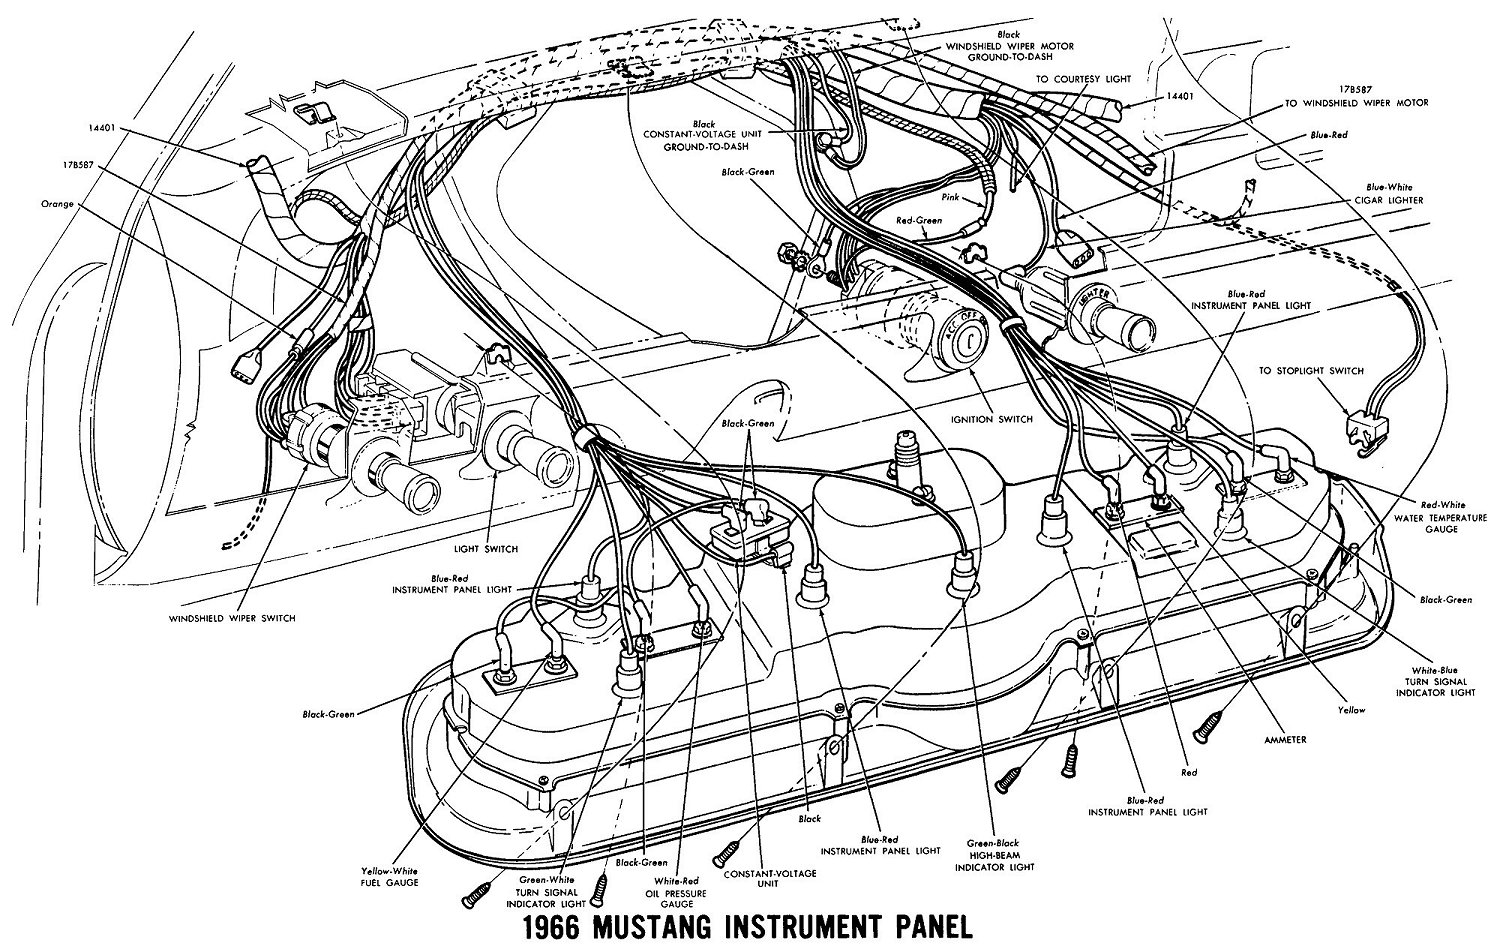 66instr 65 mustang dash wiring 1965 mustang wiring harness diagram 1970 Mustang Dash Wiring Diagram at bakdesigns.co